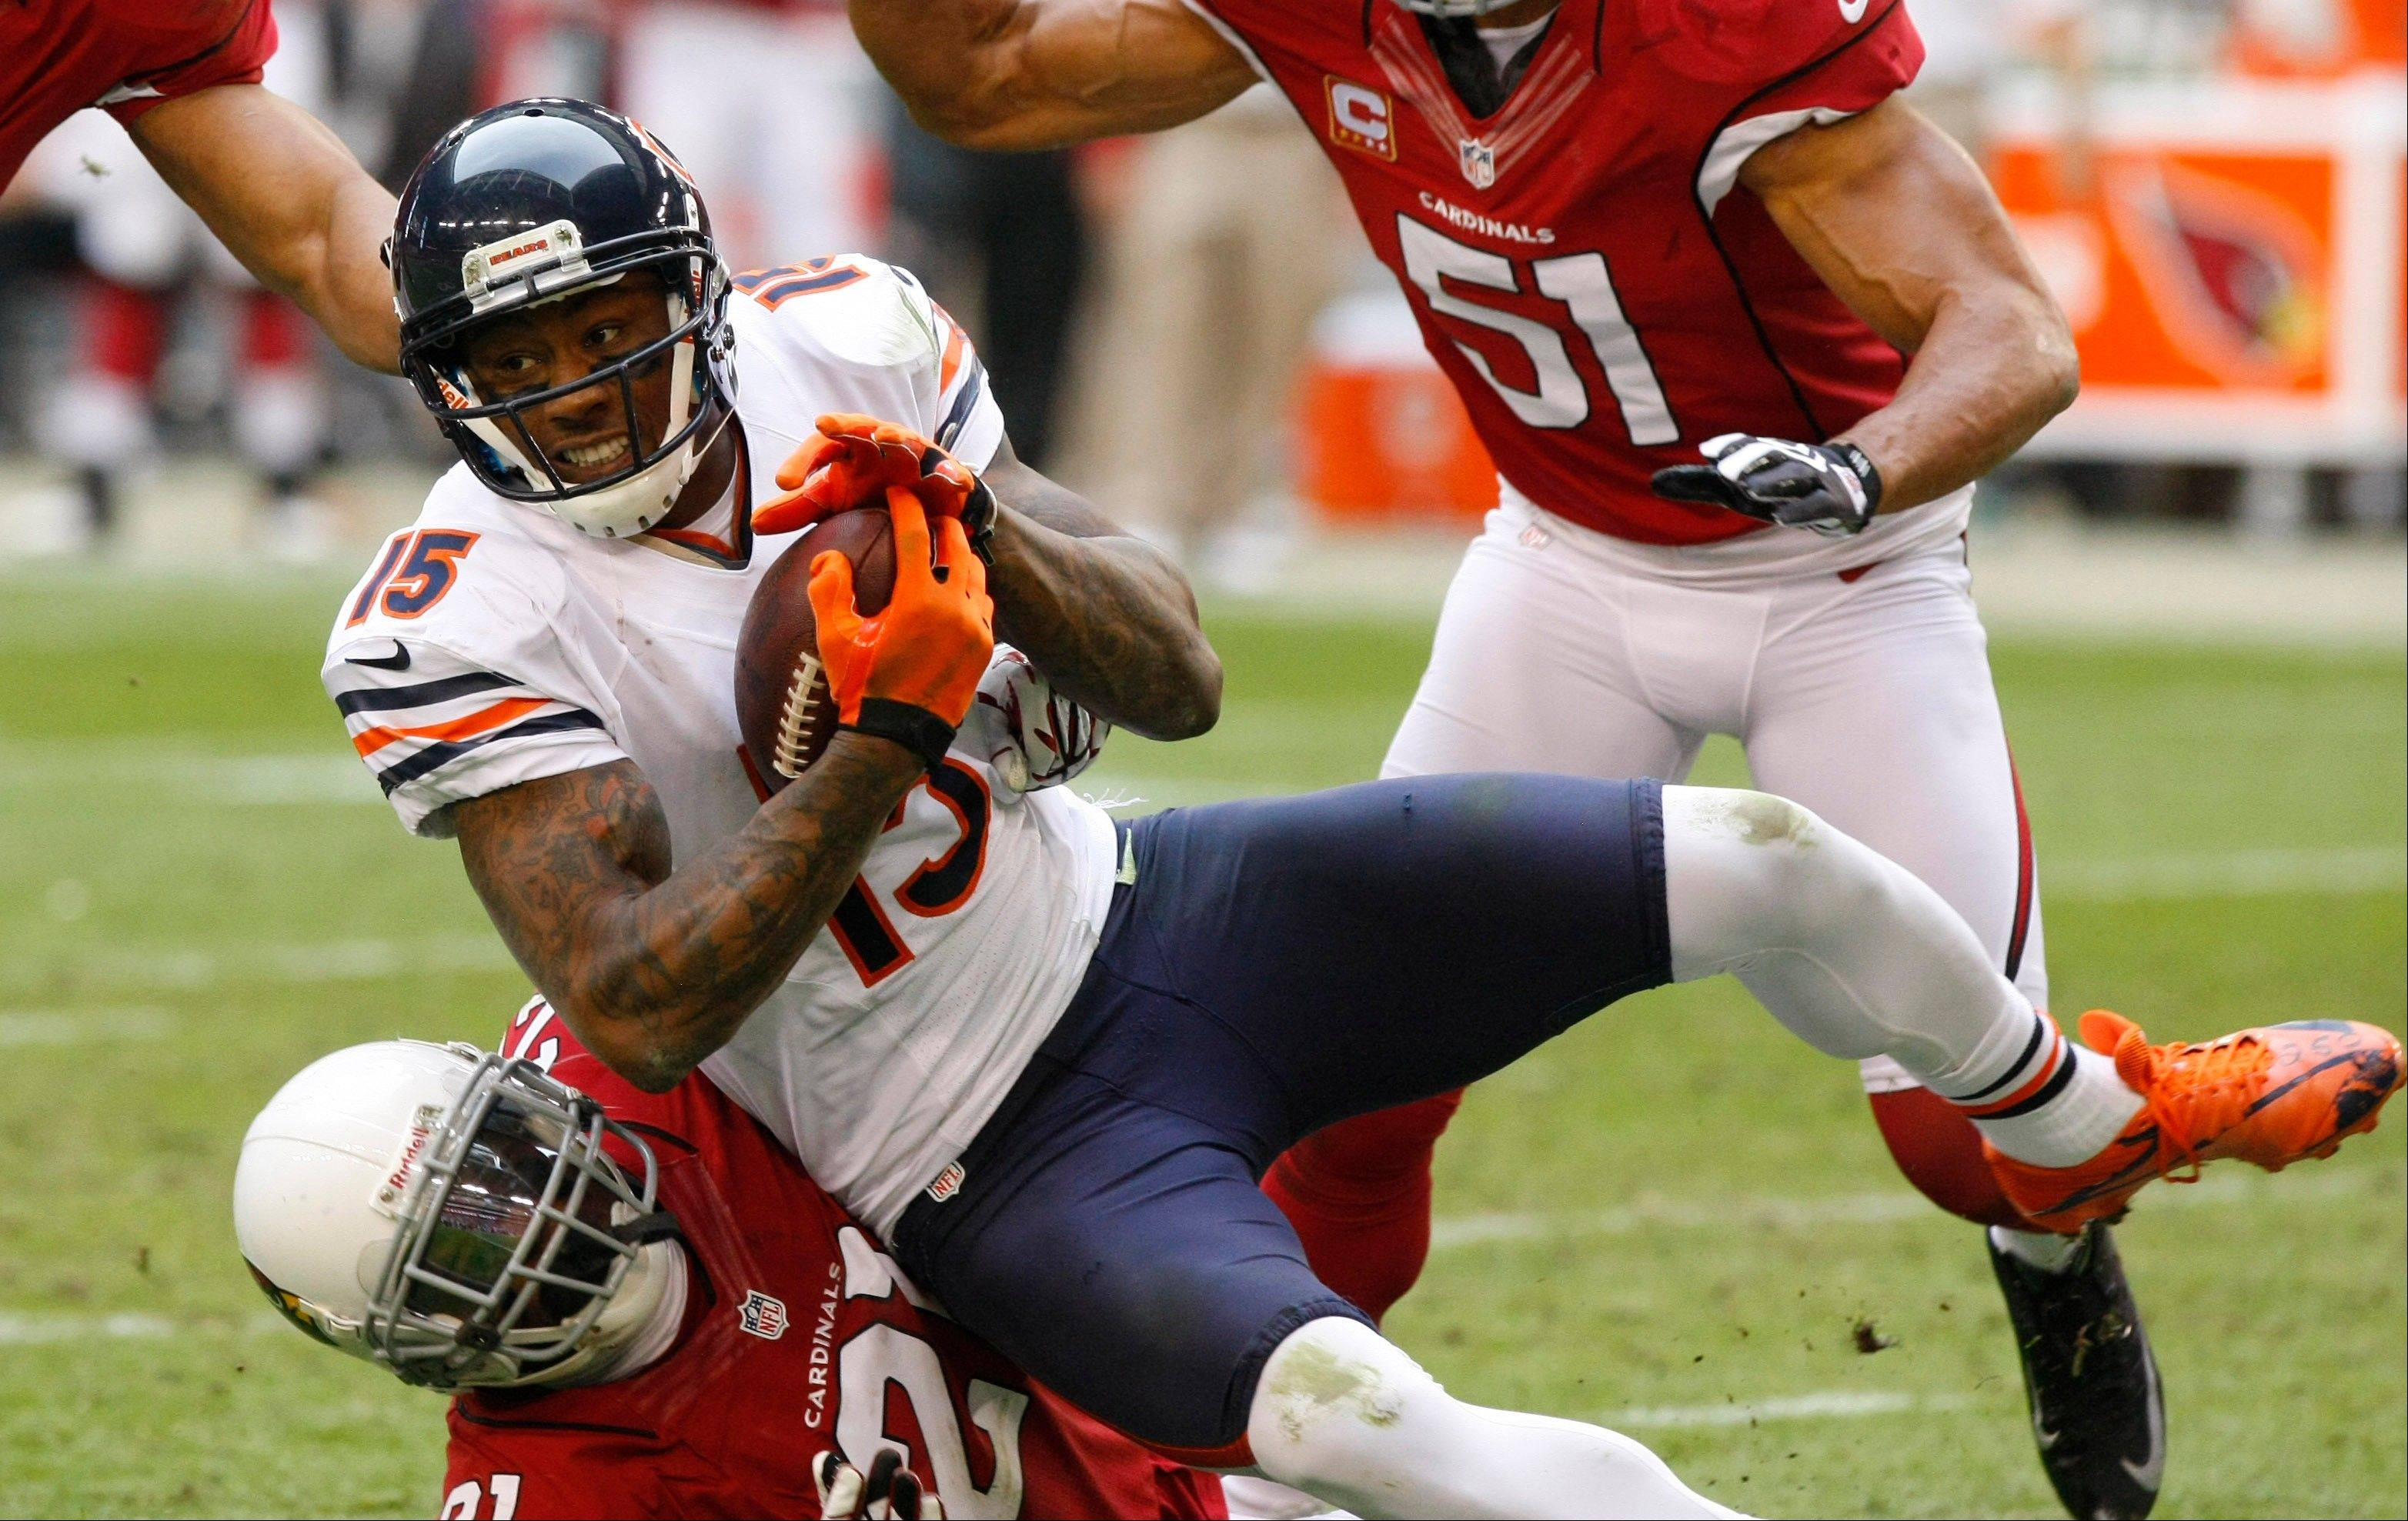 Chicago Bears wide receiver Brandon Marshall is tackled by Arizona Cardinals cornerback Patrick Peterson during the first half.